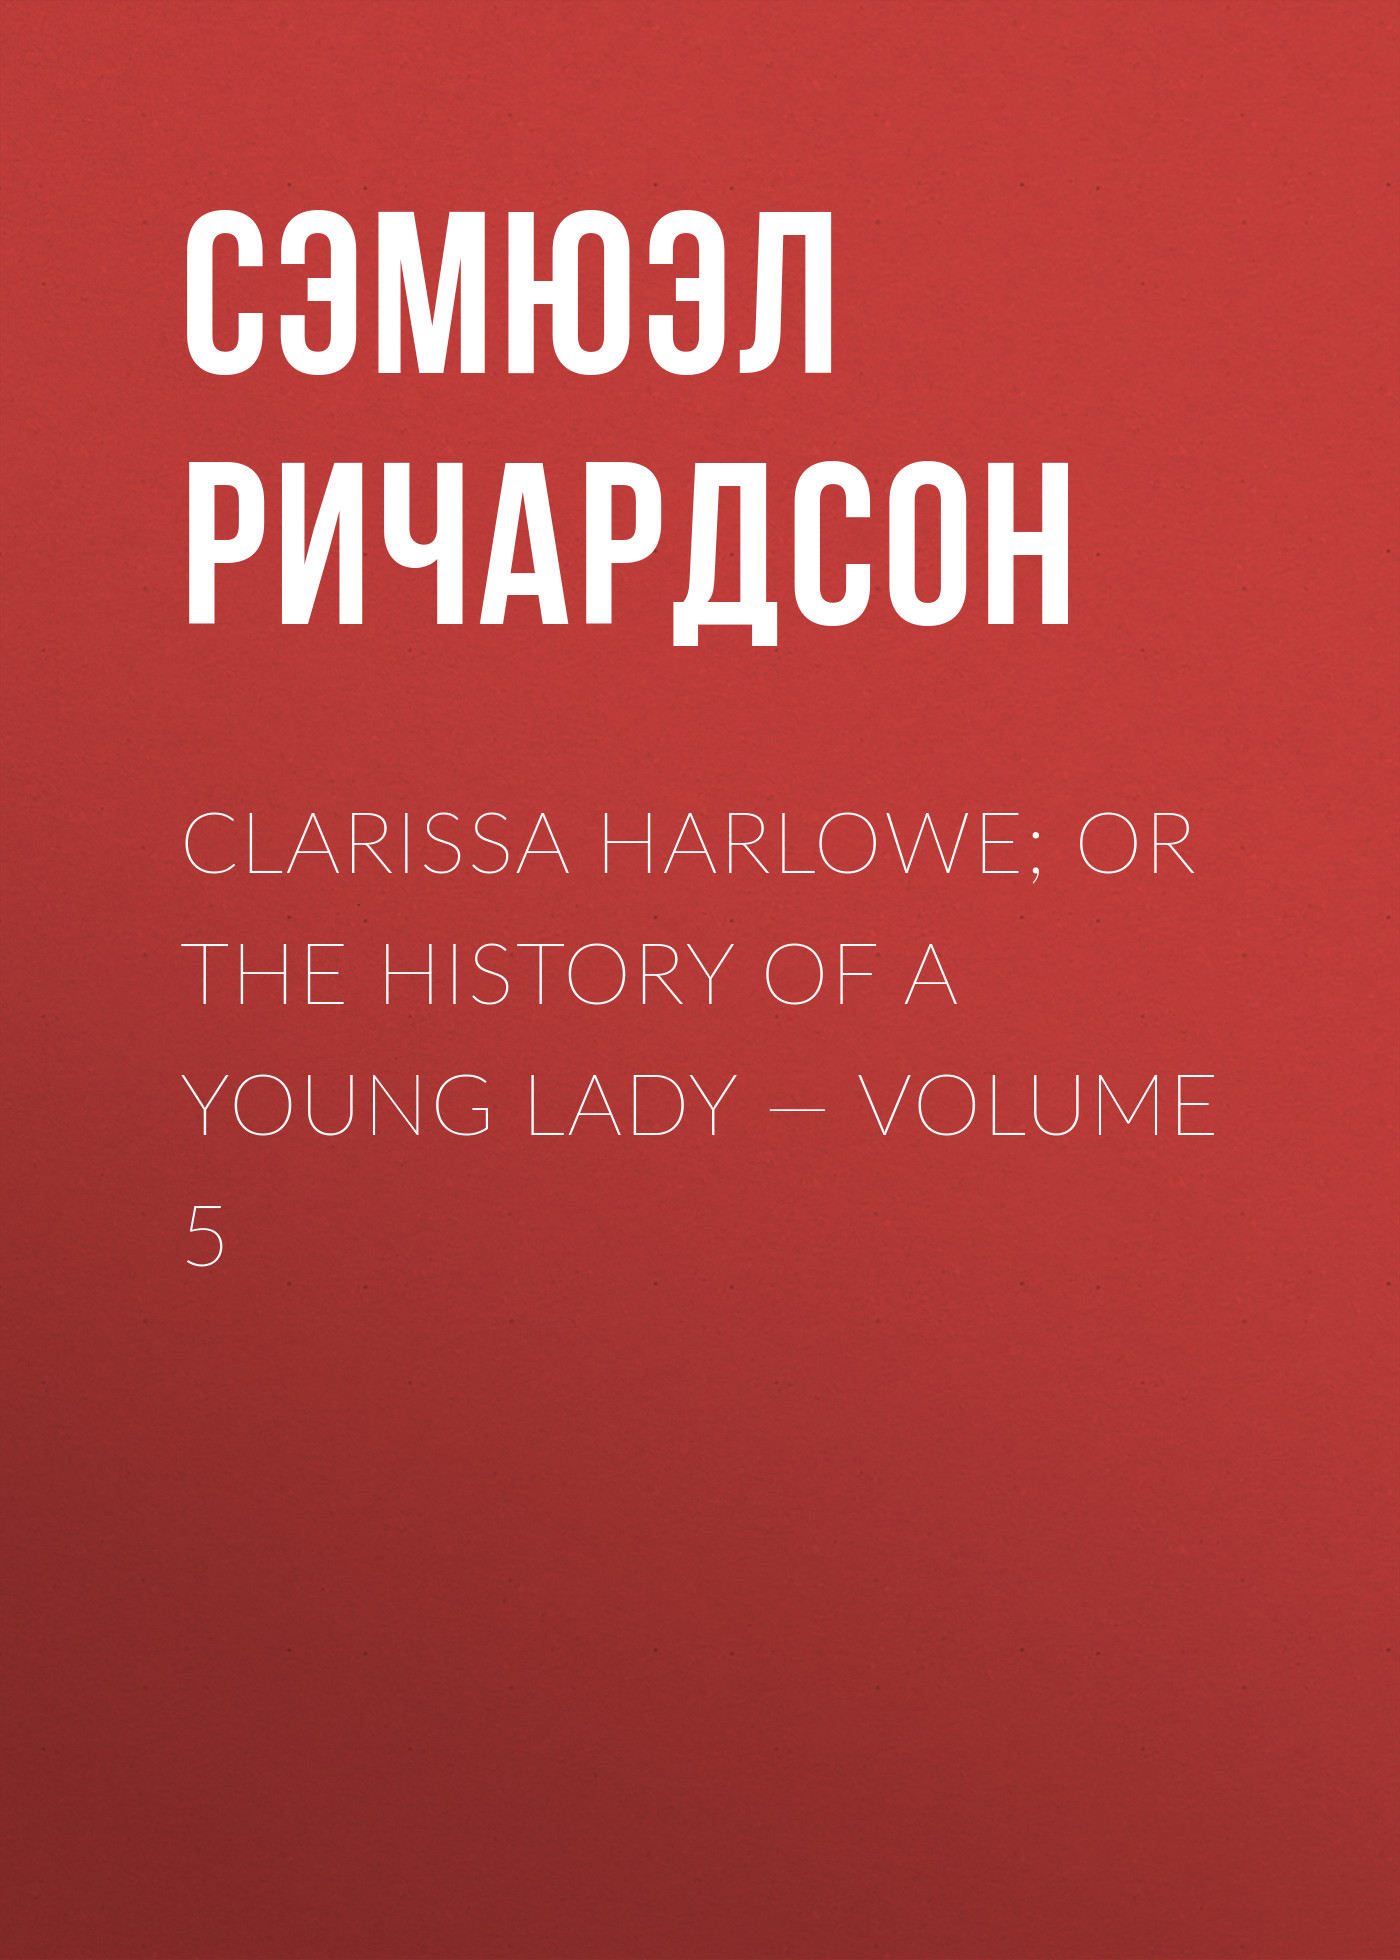 Сэмюэл Ричардсон Clarissa Harlowe; or the history of a young lady — Volume 5 burney fanny the wanderer or female difficulties volume 5 of 5